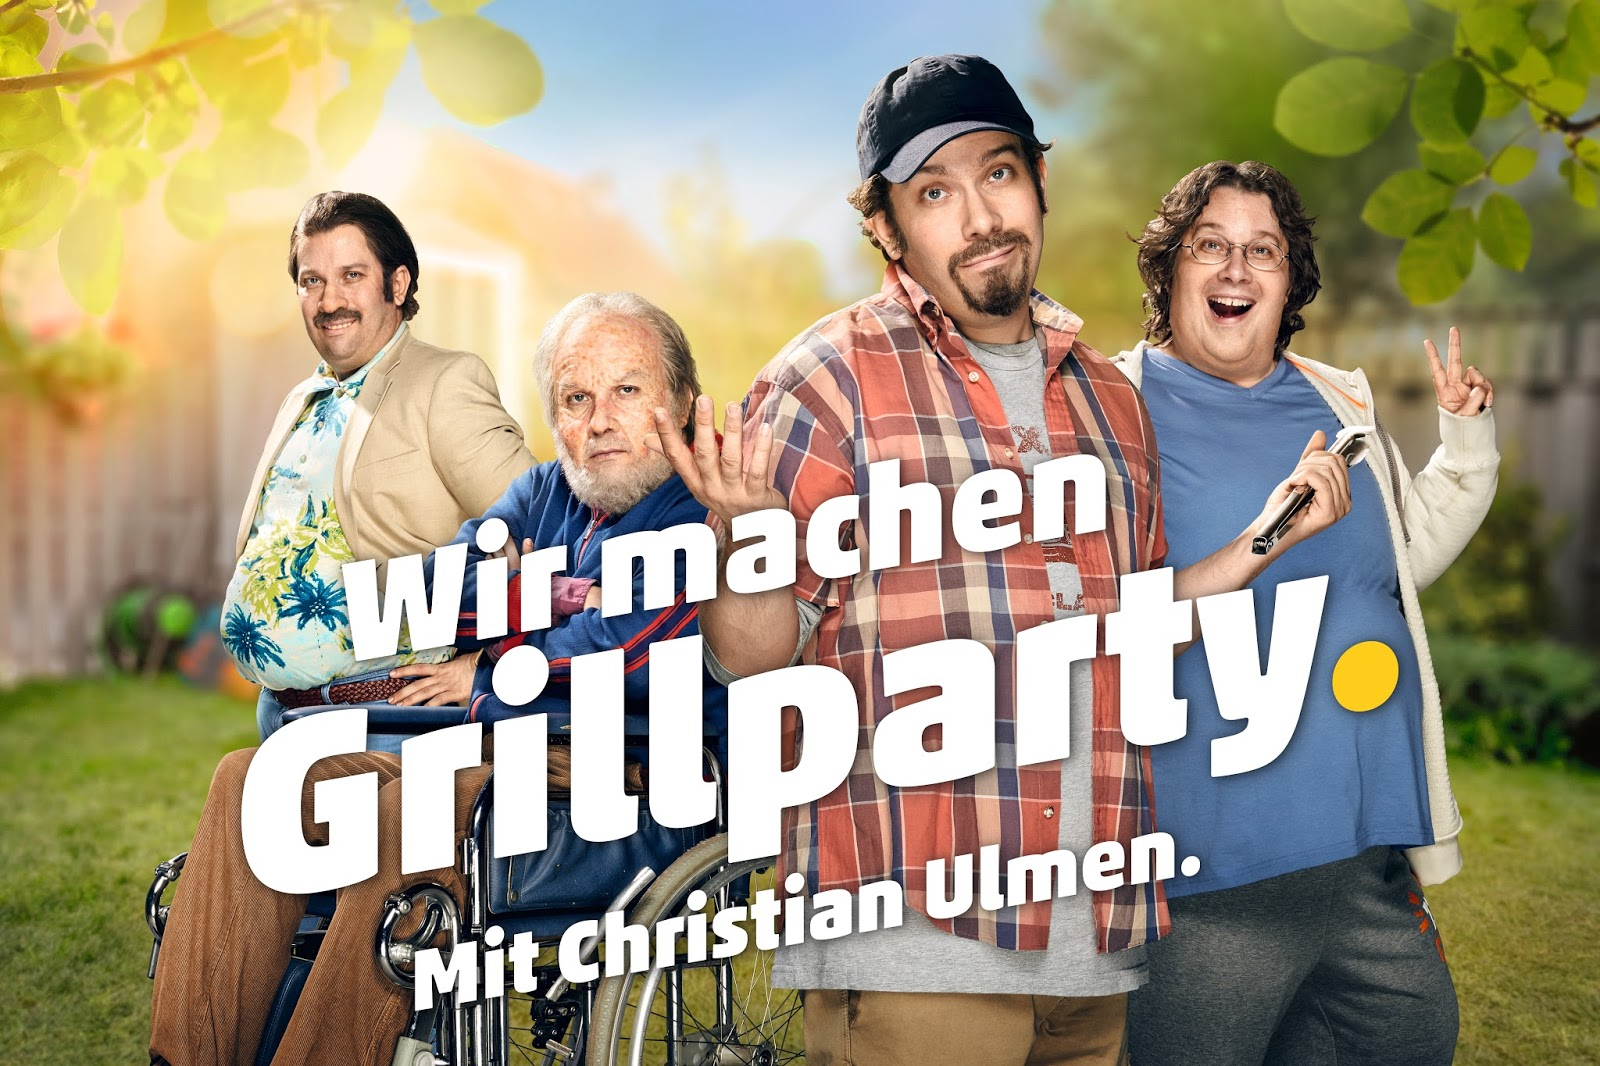 WIR MACHEN GRILLPARTY WEBISODE 4 | PENNY X CHRISTIAN ULMEN IN 'MARCO ENTHÜLLT'